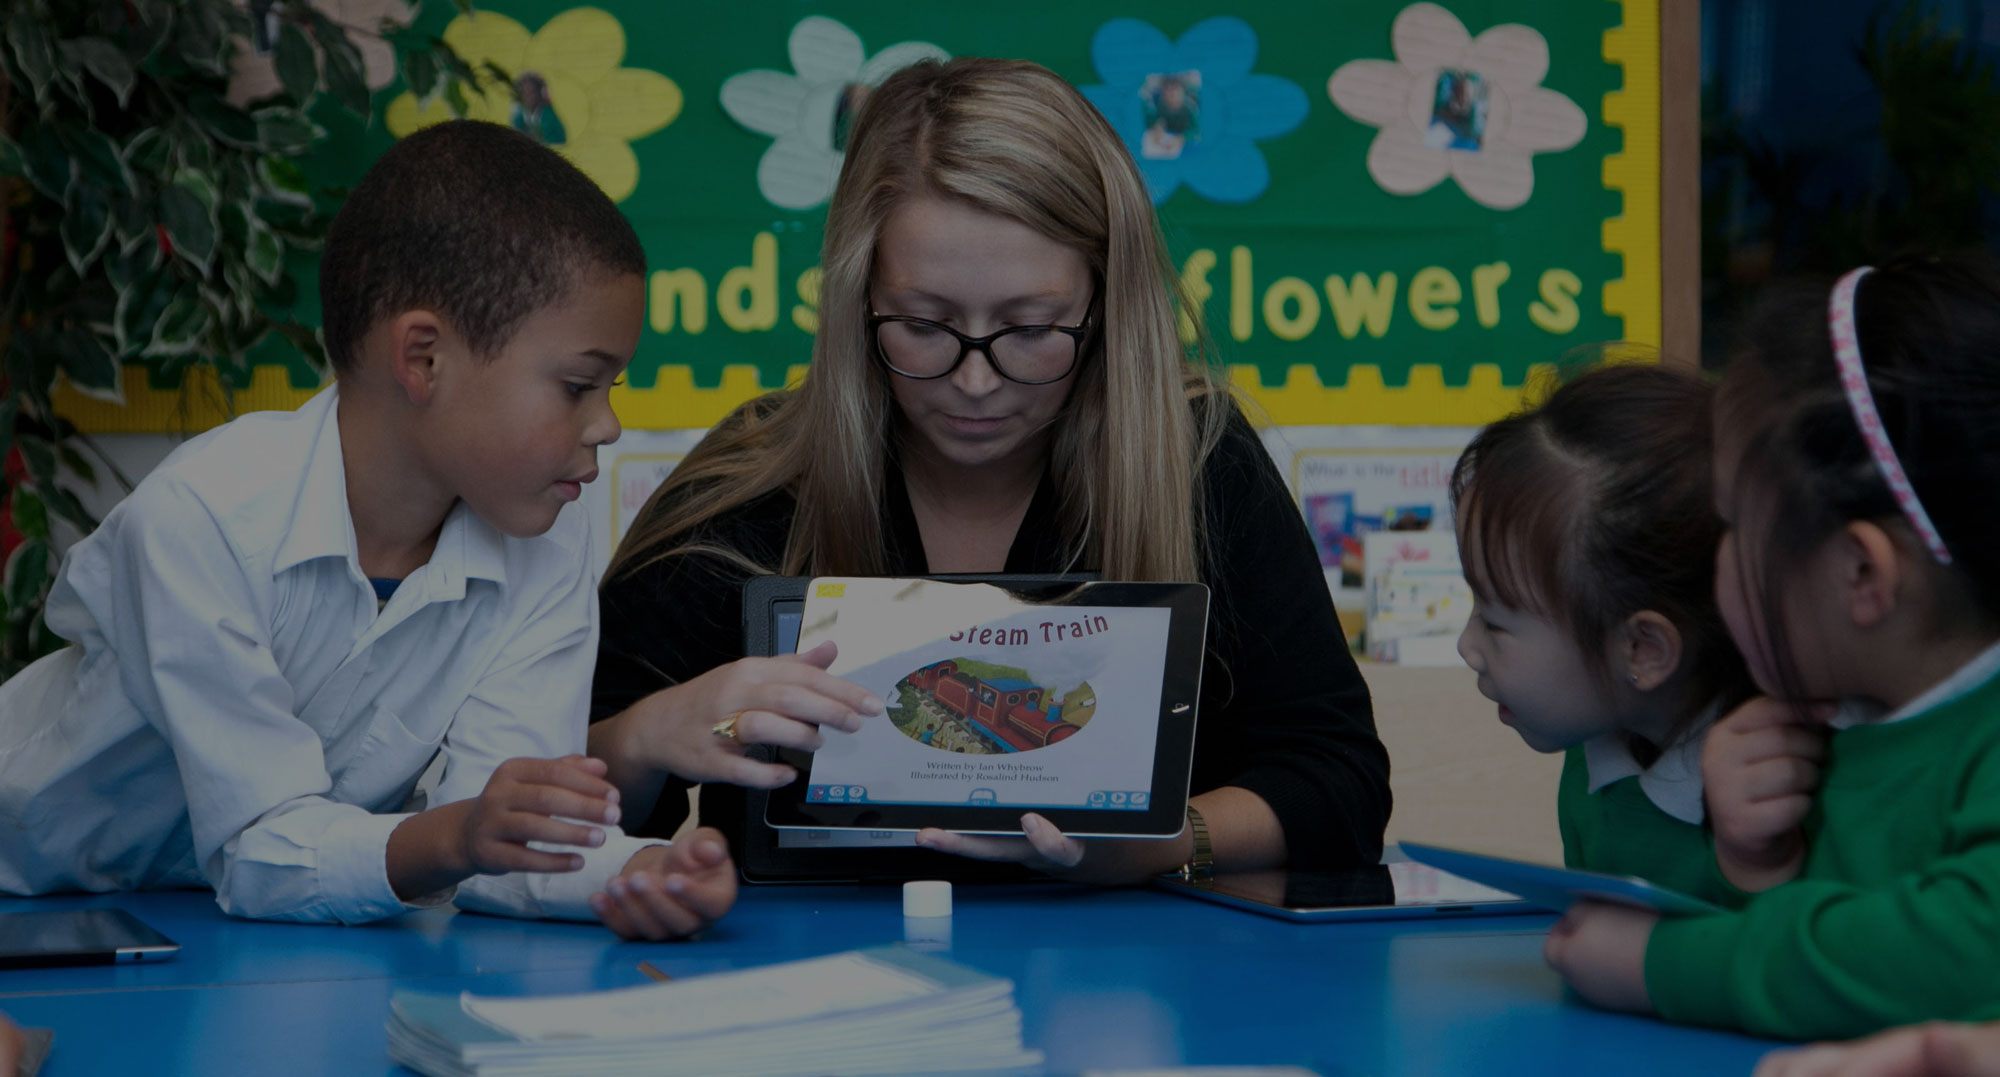 10 Questions to Ask When Selecting Classroom Technology